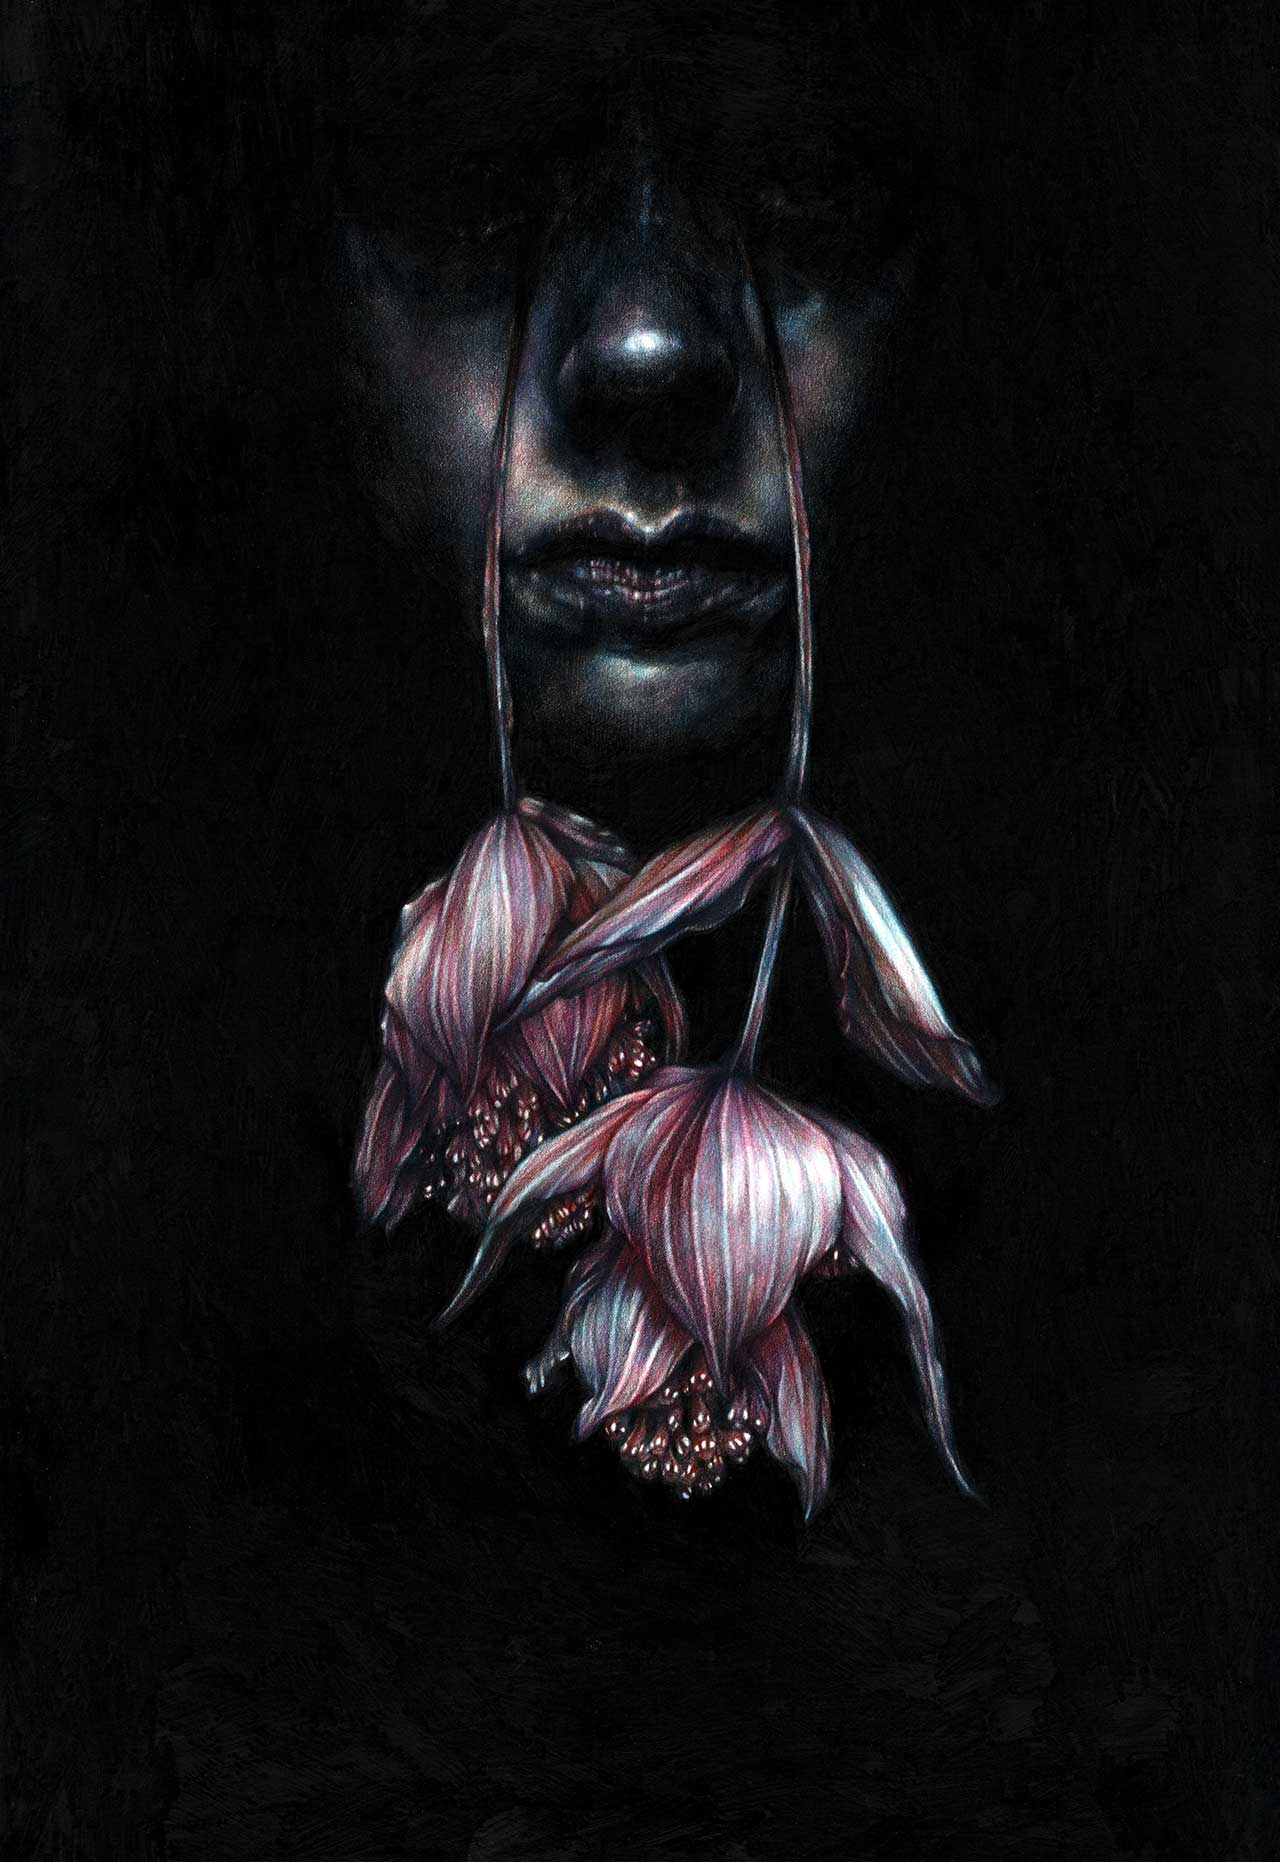 Marco Mazzoni, Tearwalker. Colored pencils on paper © Marco Mazzoni.